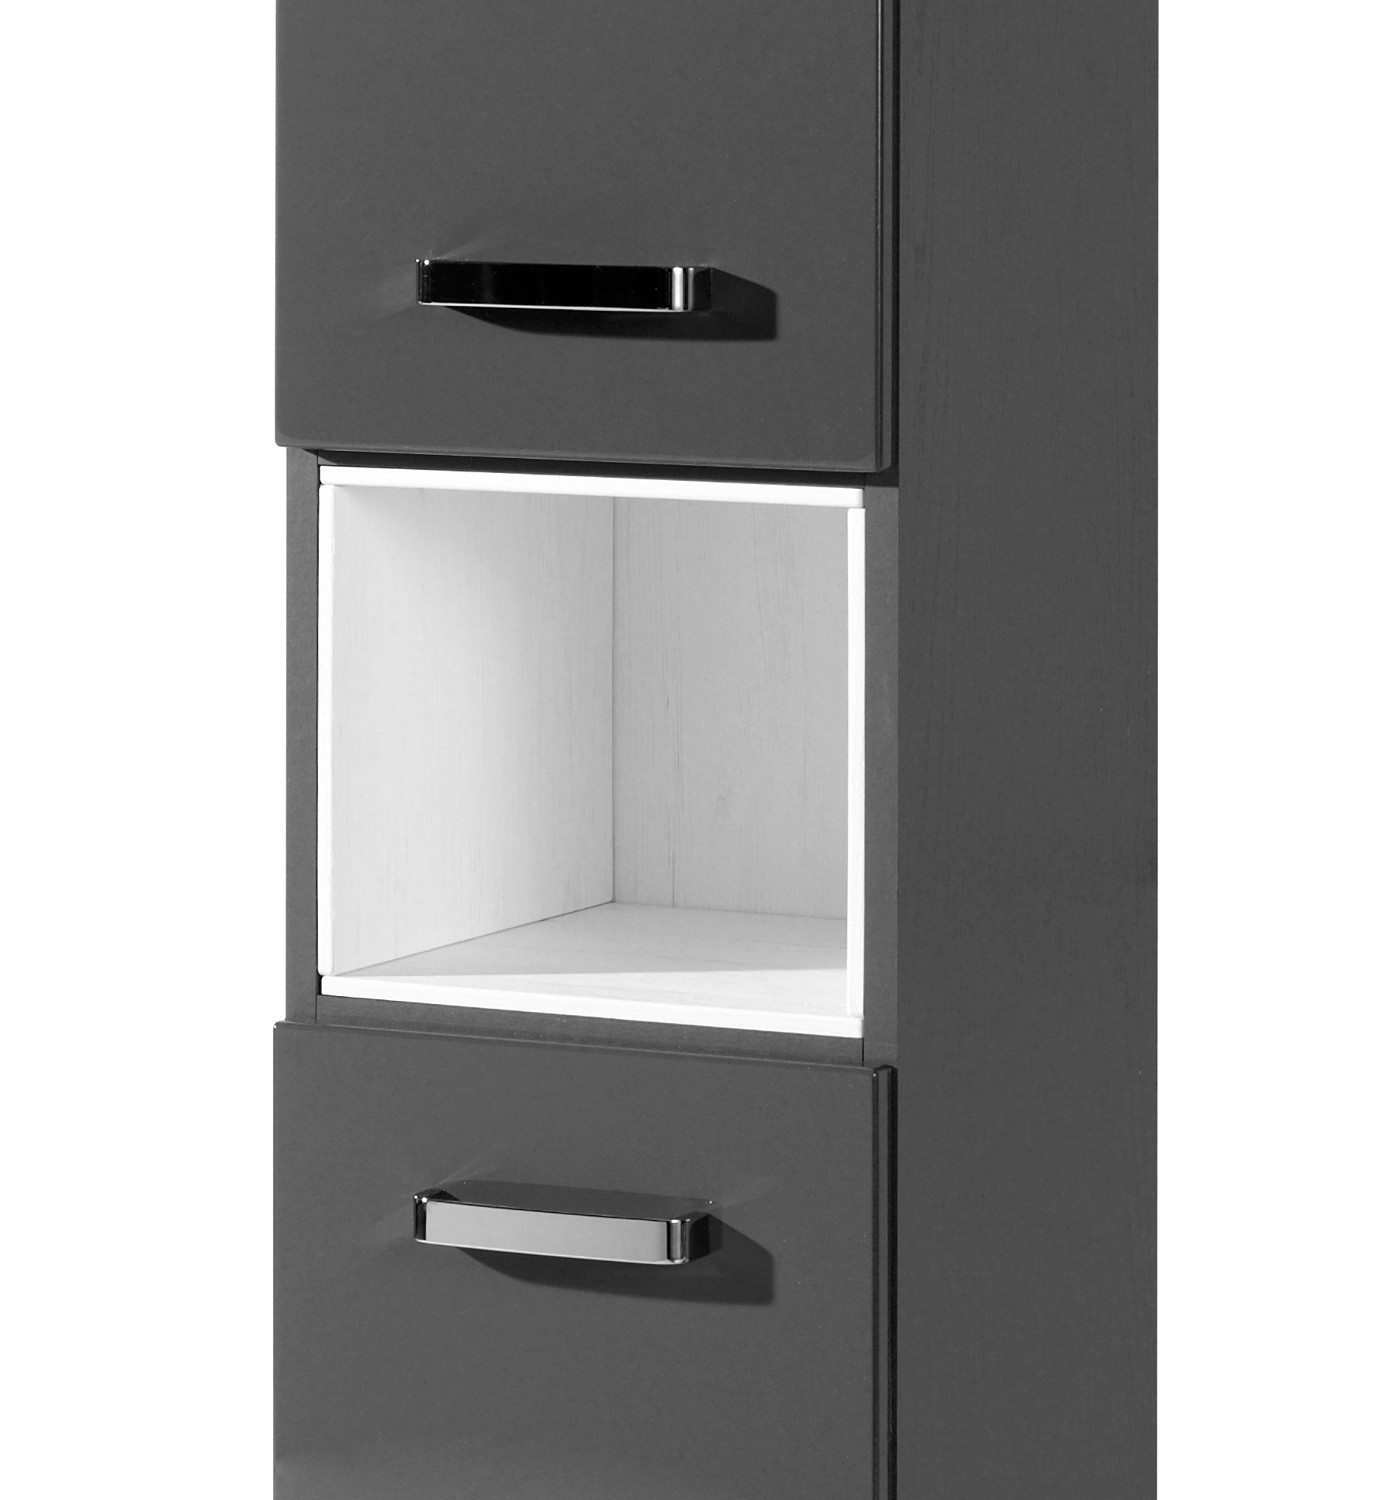 bad hochschrank ancona 2 t rig 1 regalfach 30 cm. Black Bedroom Furniture Sets. Home Design Ideas